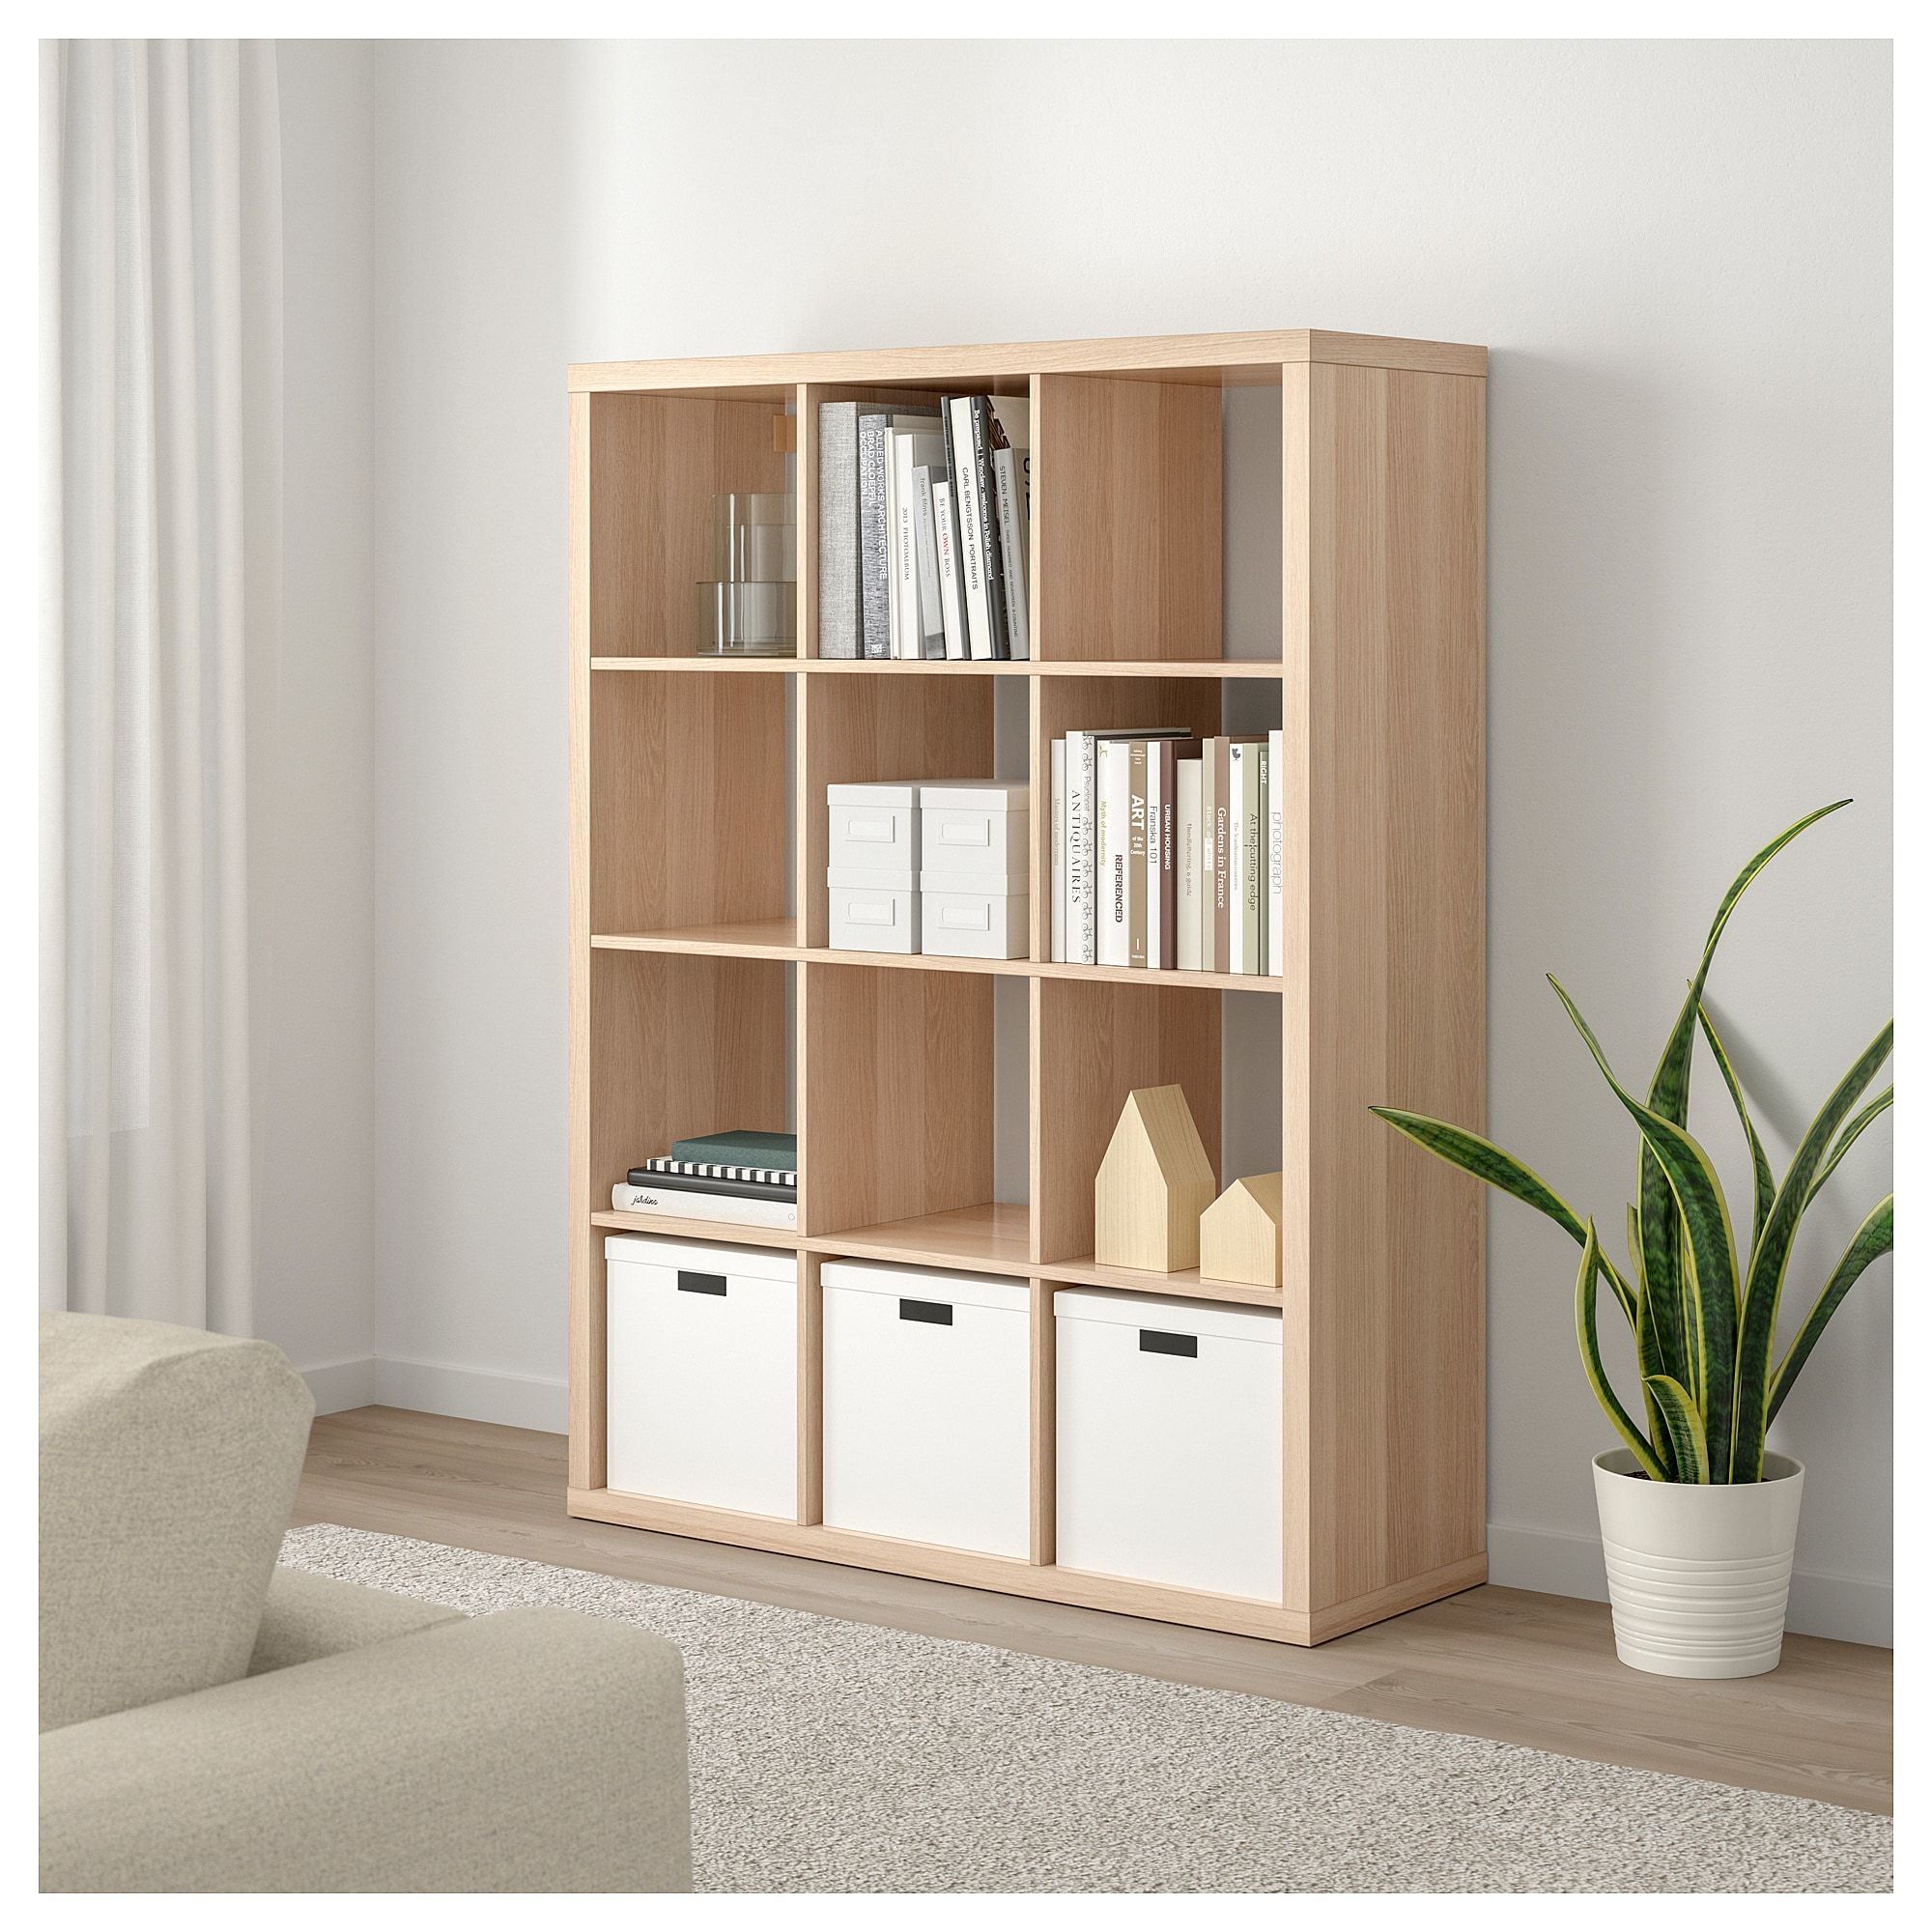 KALLAX Shelving unit white stained oak effect white